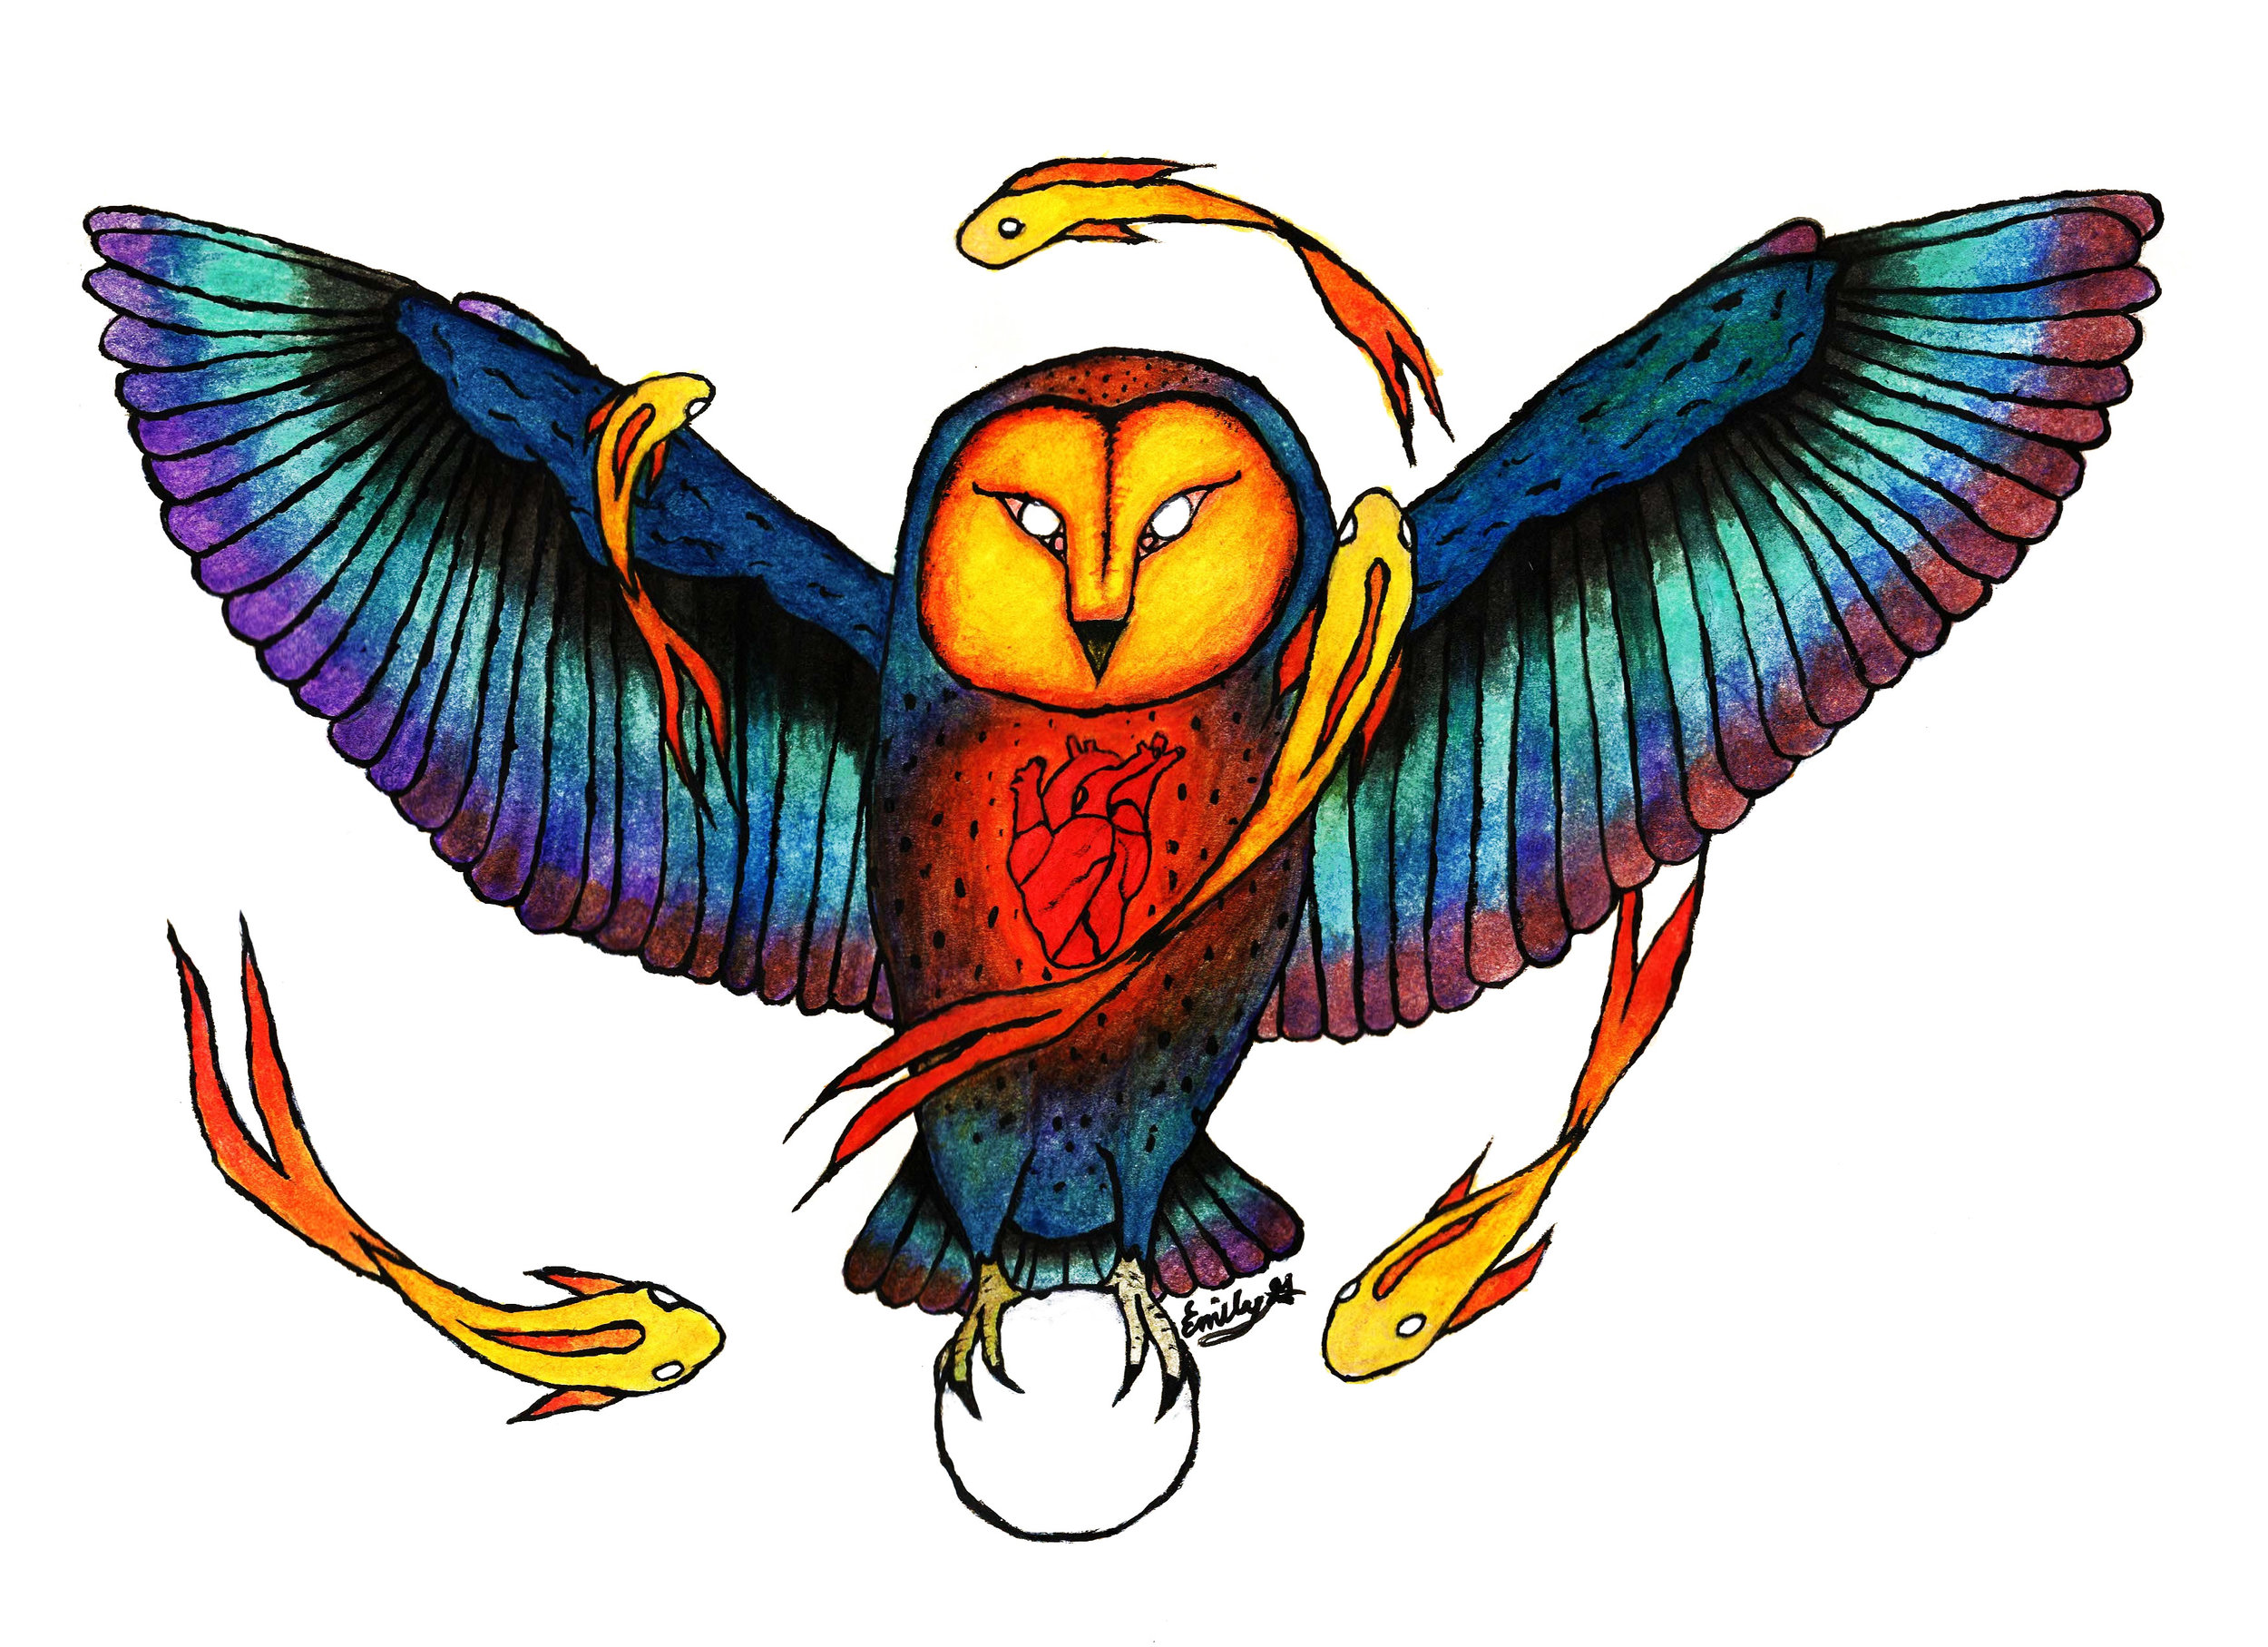 Cosmic Owl Poster  €9.99–€14.99 Available in A4, A3